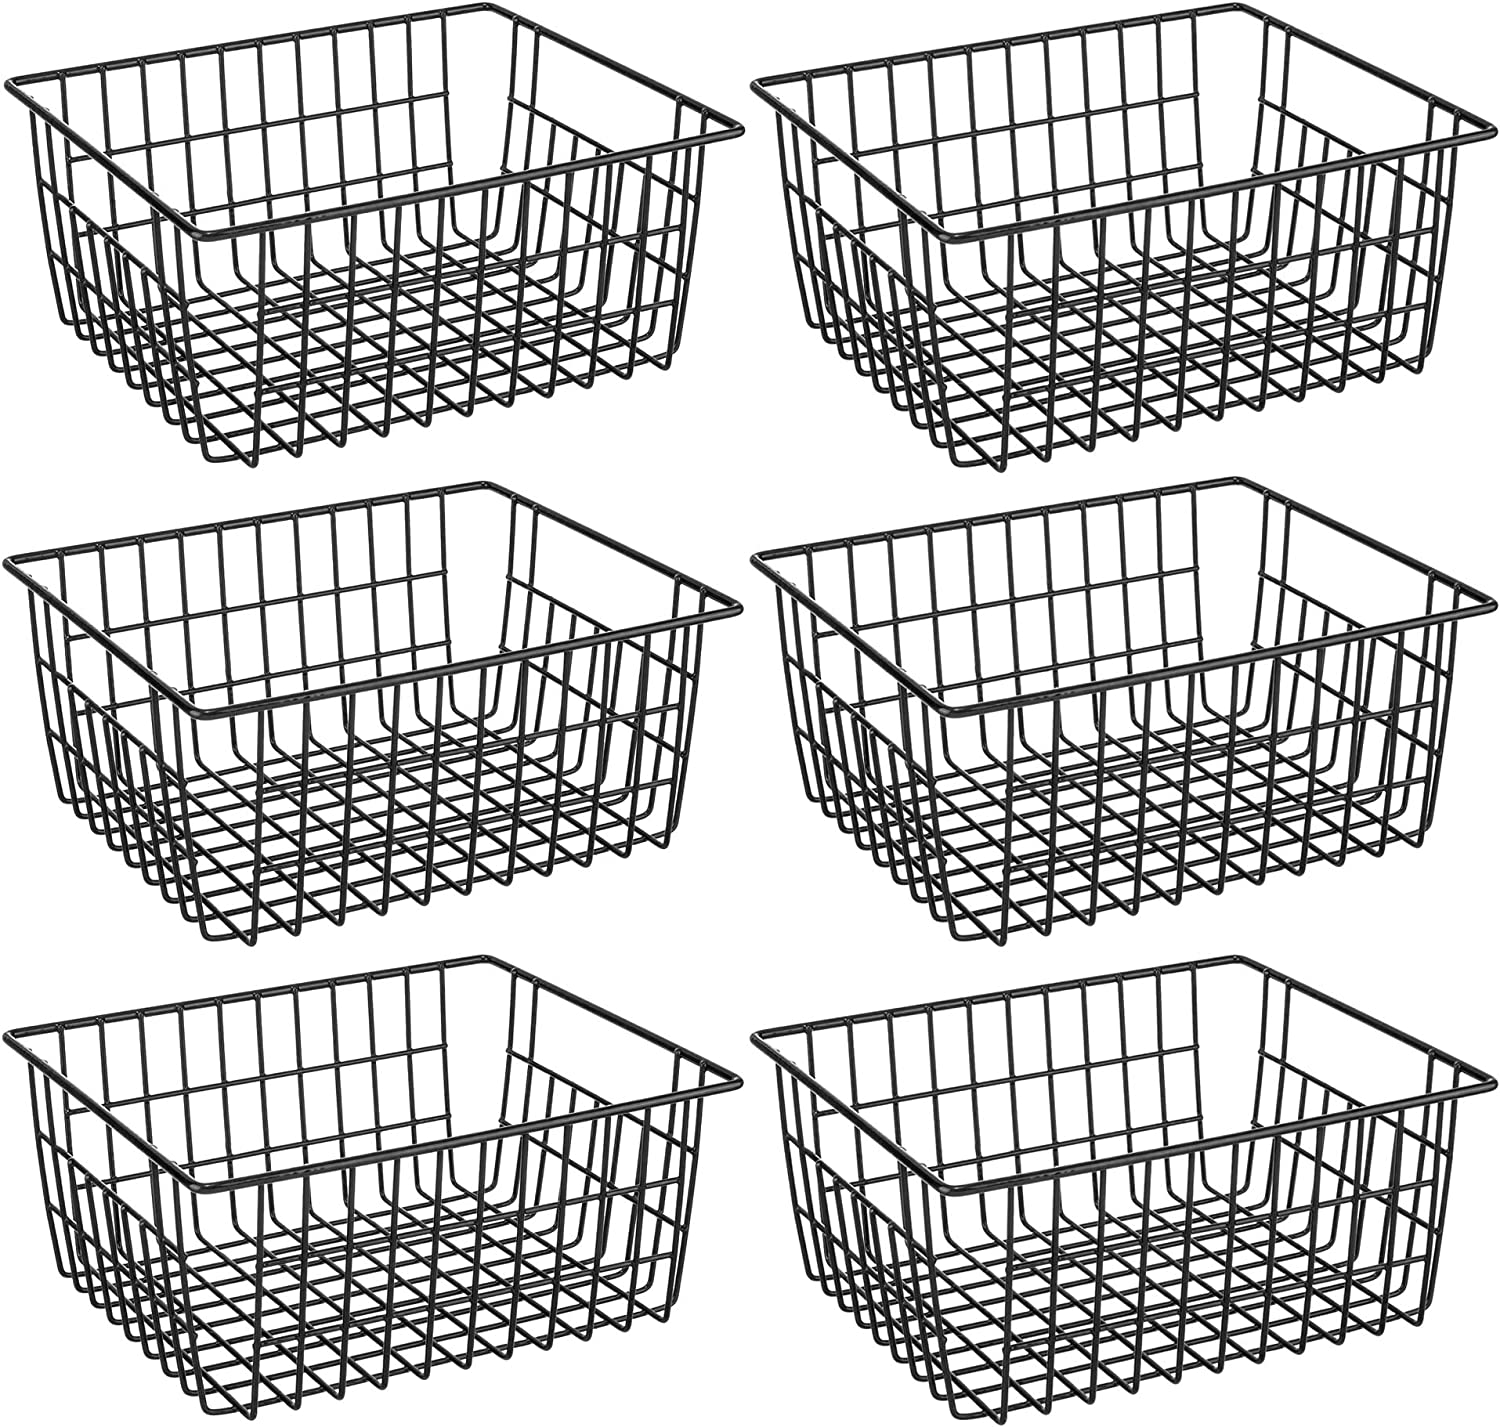 Freezer Refrigerator Wire Storage Baskets, iPEGTOP 6 Pack Metal Baskets Food Storage Organizer Bin with Built-in Handles for Freezer Pantry, Shelf, Freezer, Kitchen, Cabinet, Bathroom, Black